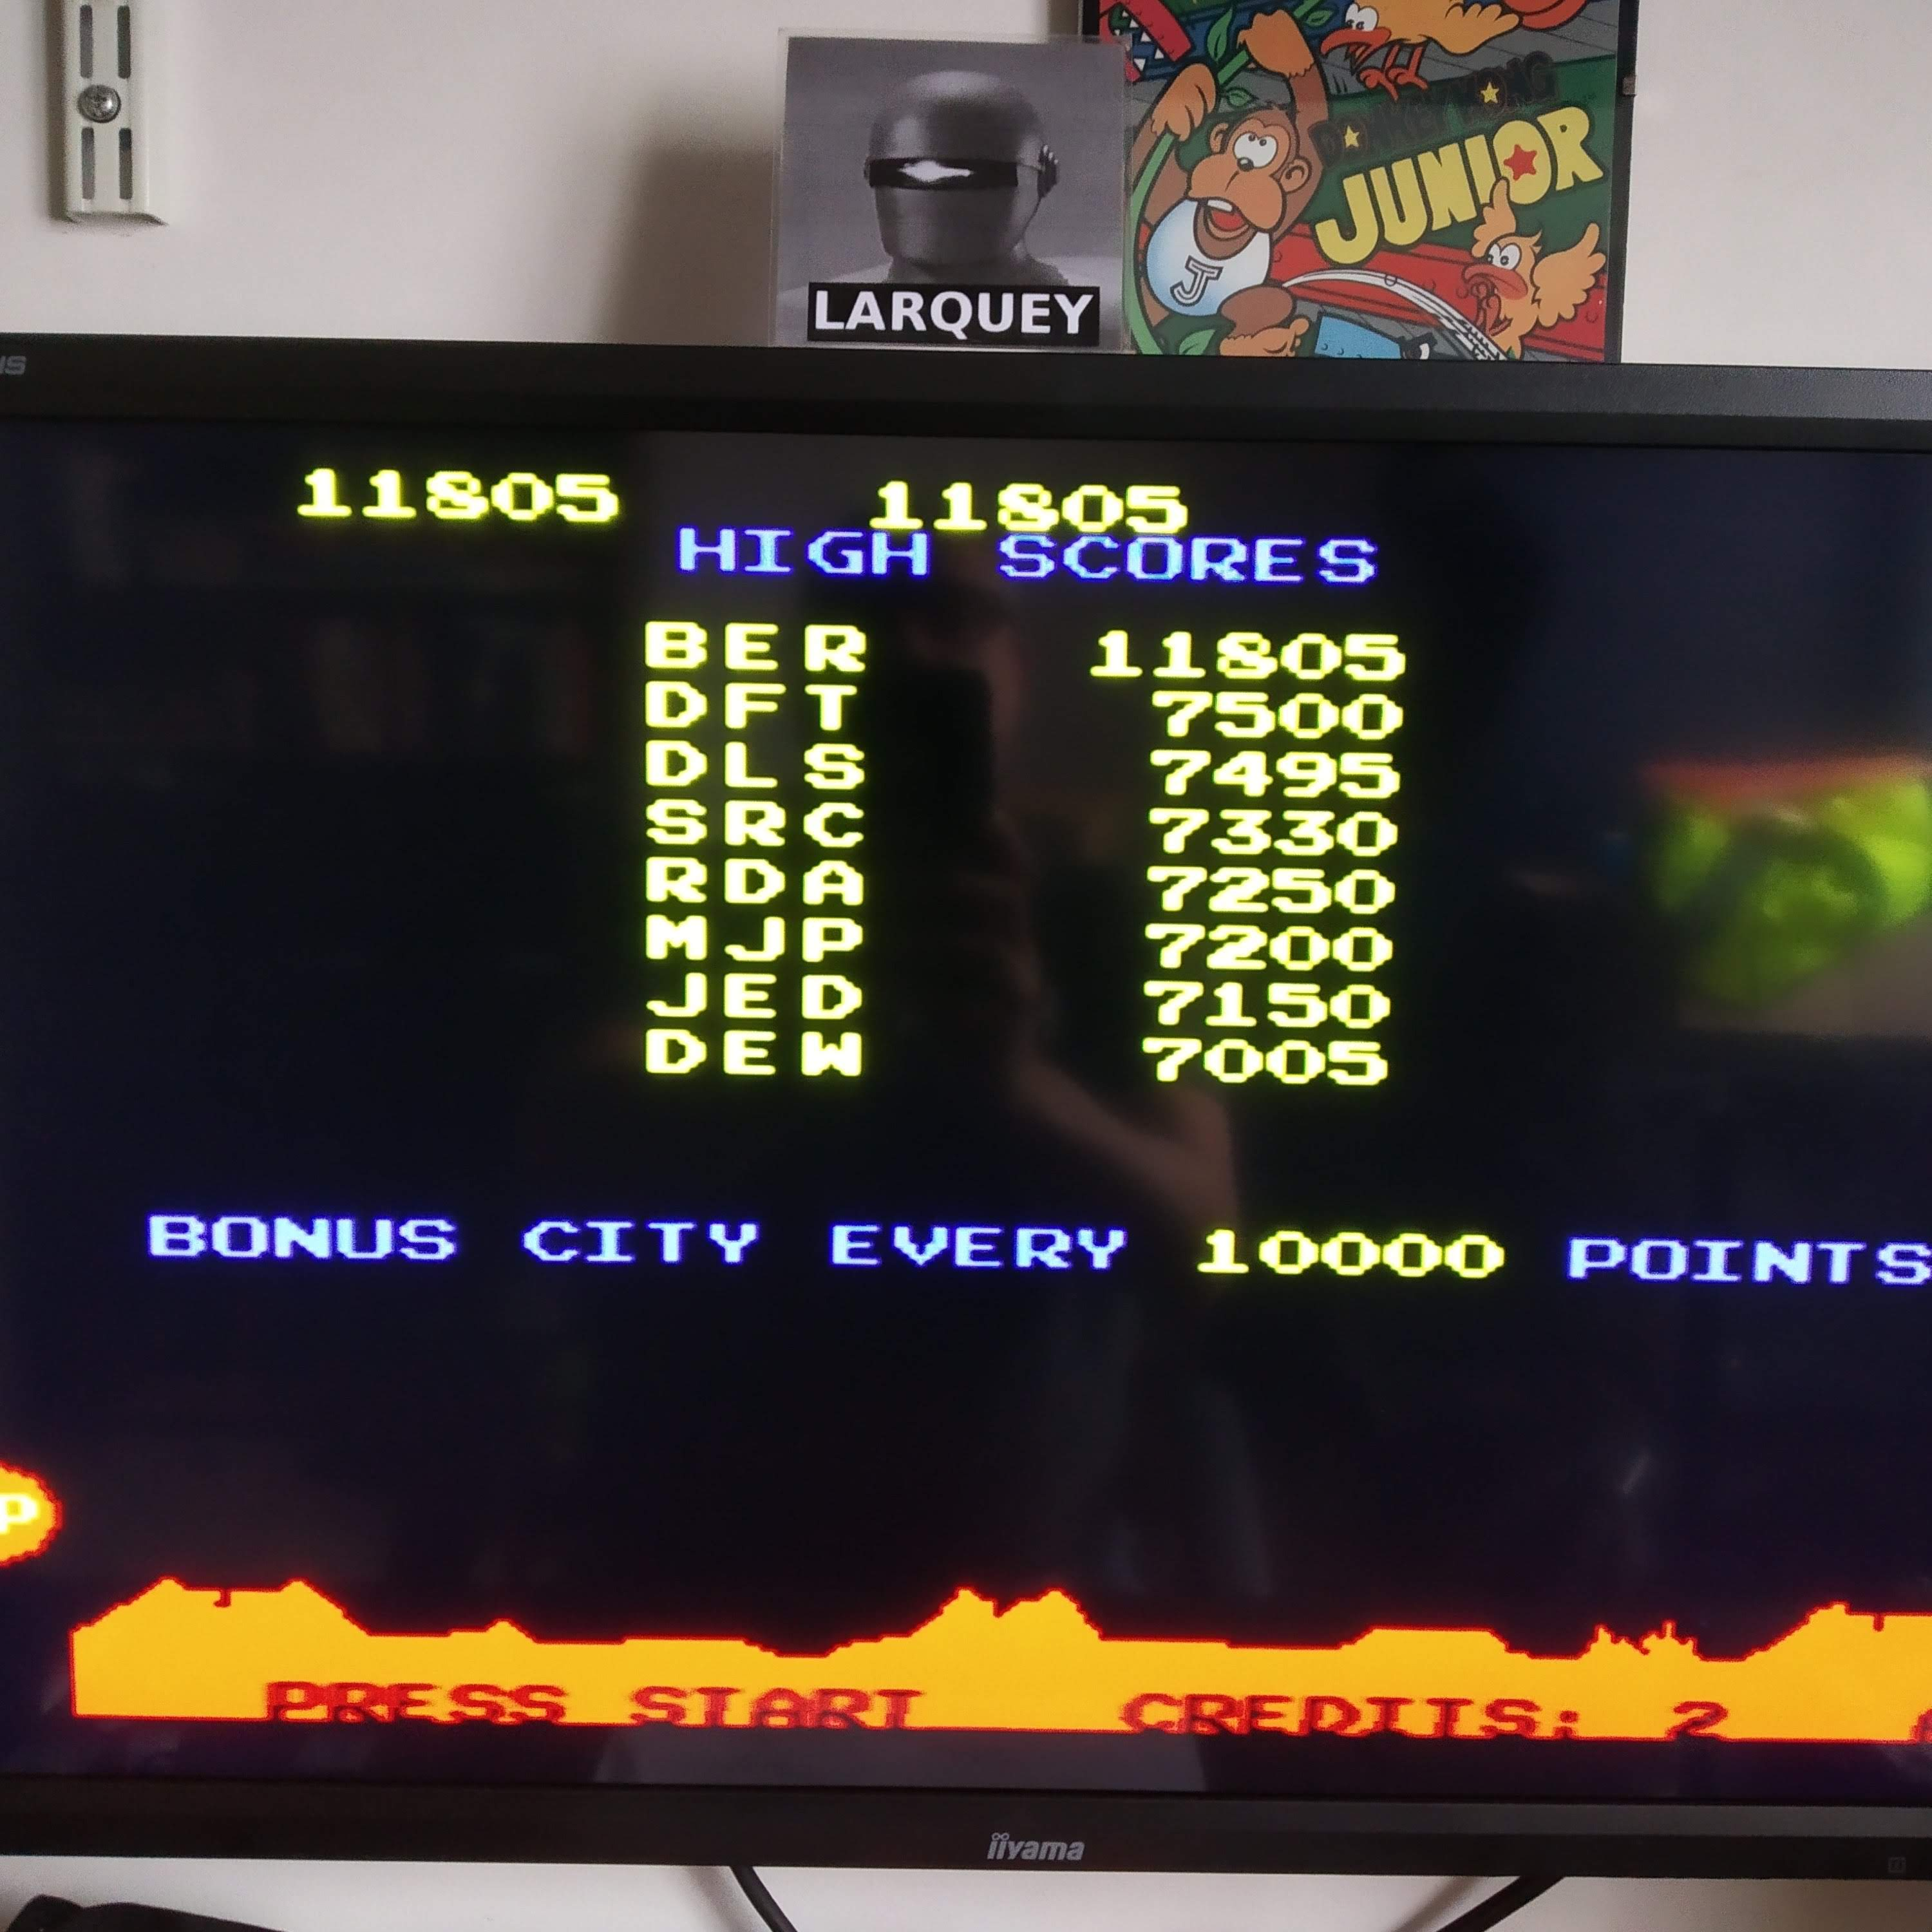 Larquey: Arcade`s Greatest Hits: The Atari Collection 1: Missile Command (Playstation 1 Emulated) 11,805 points on 2020-08-16 07:32:19